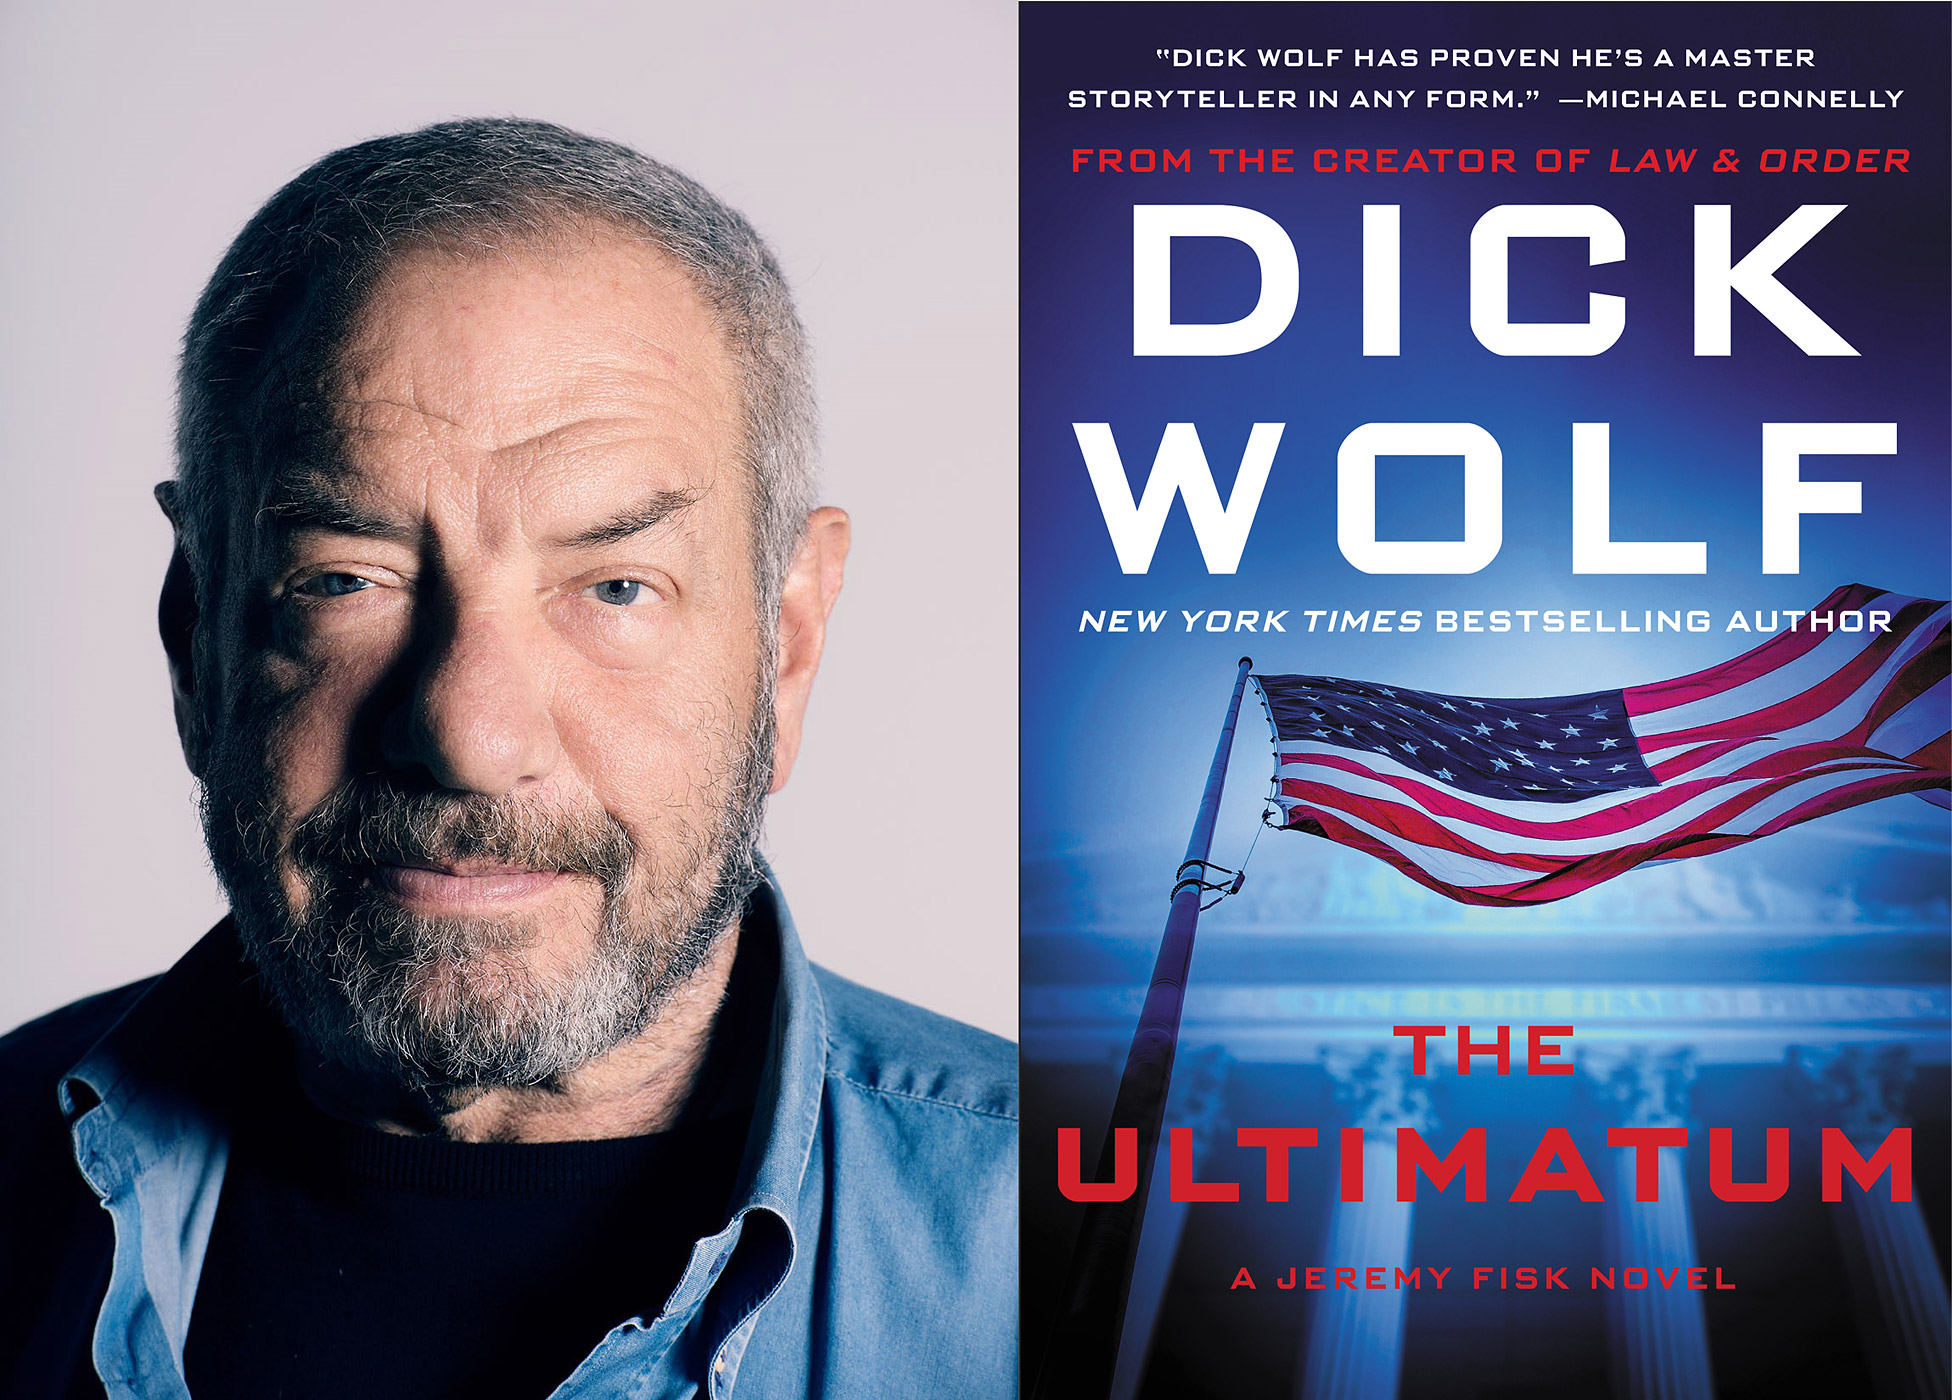 Dick Wolf and his new novel, The Ultimatum